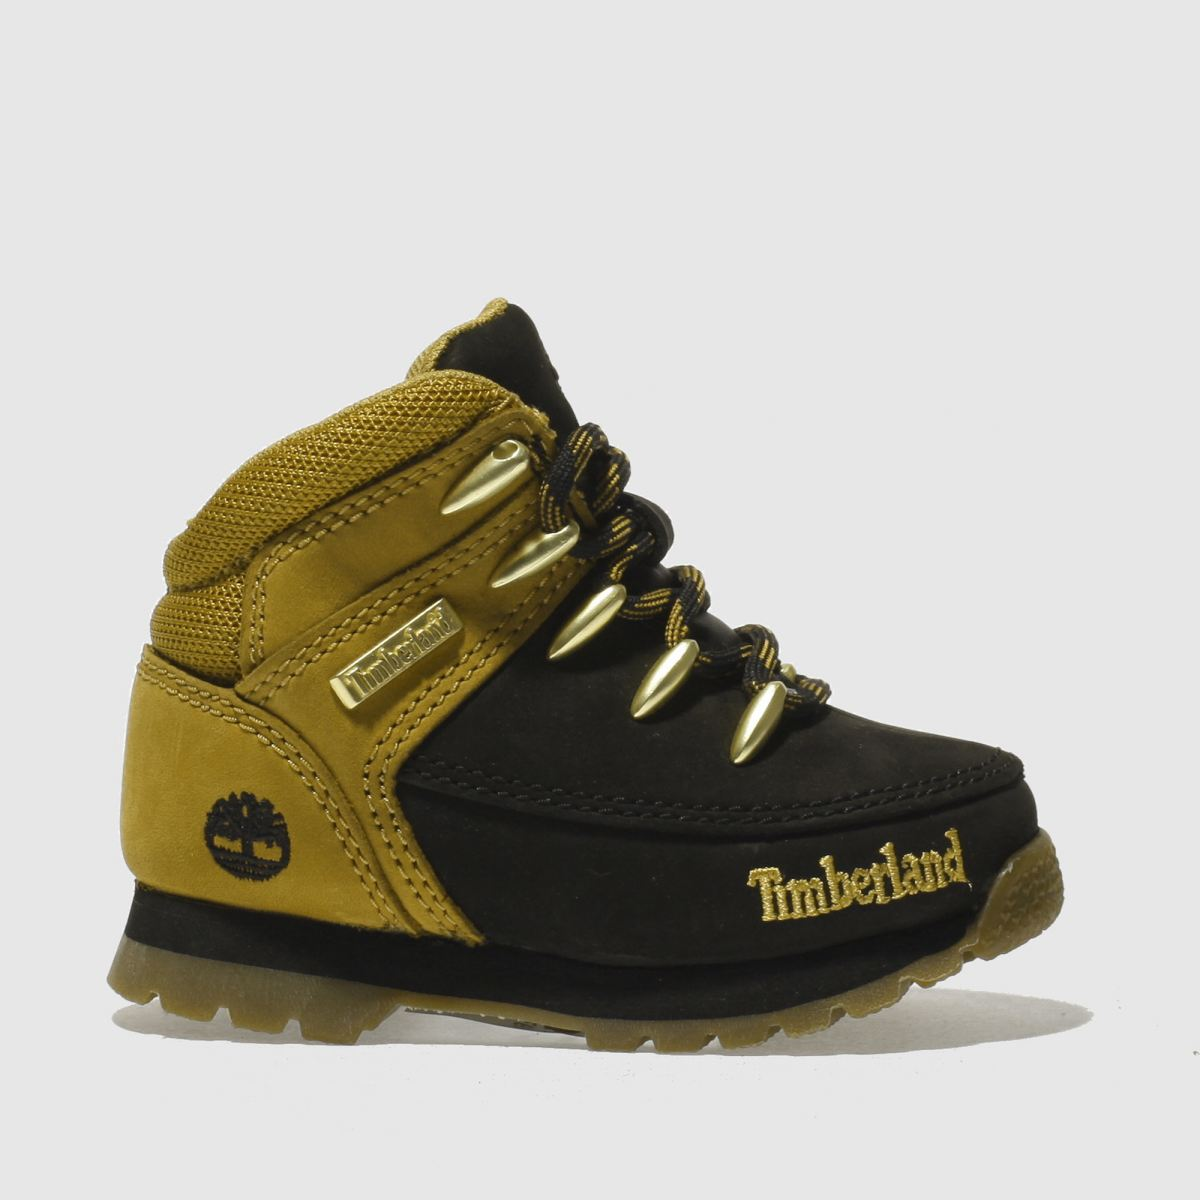 timberland black & gold eurosprint Toddler Boots